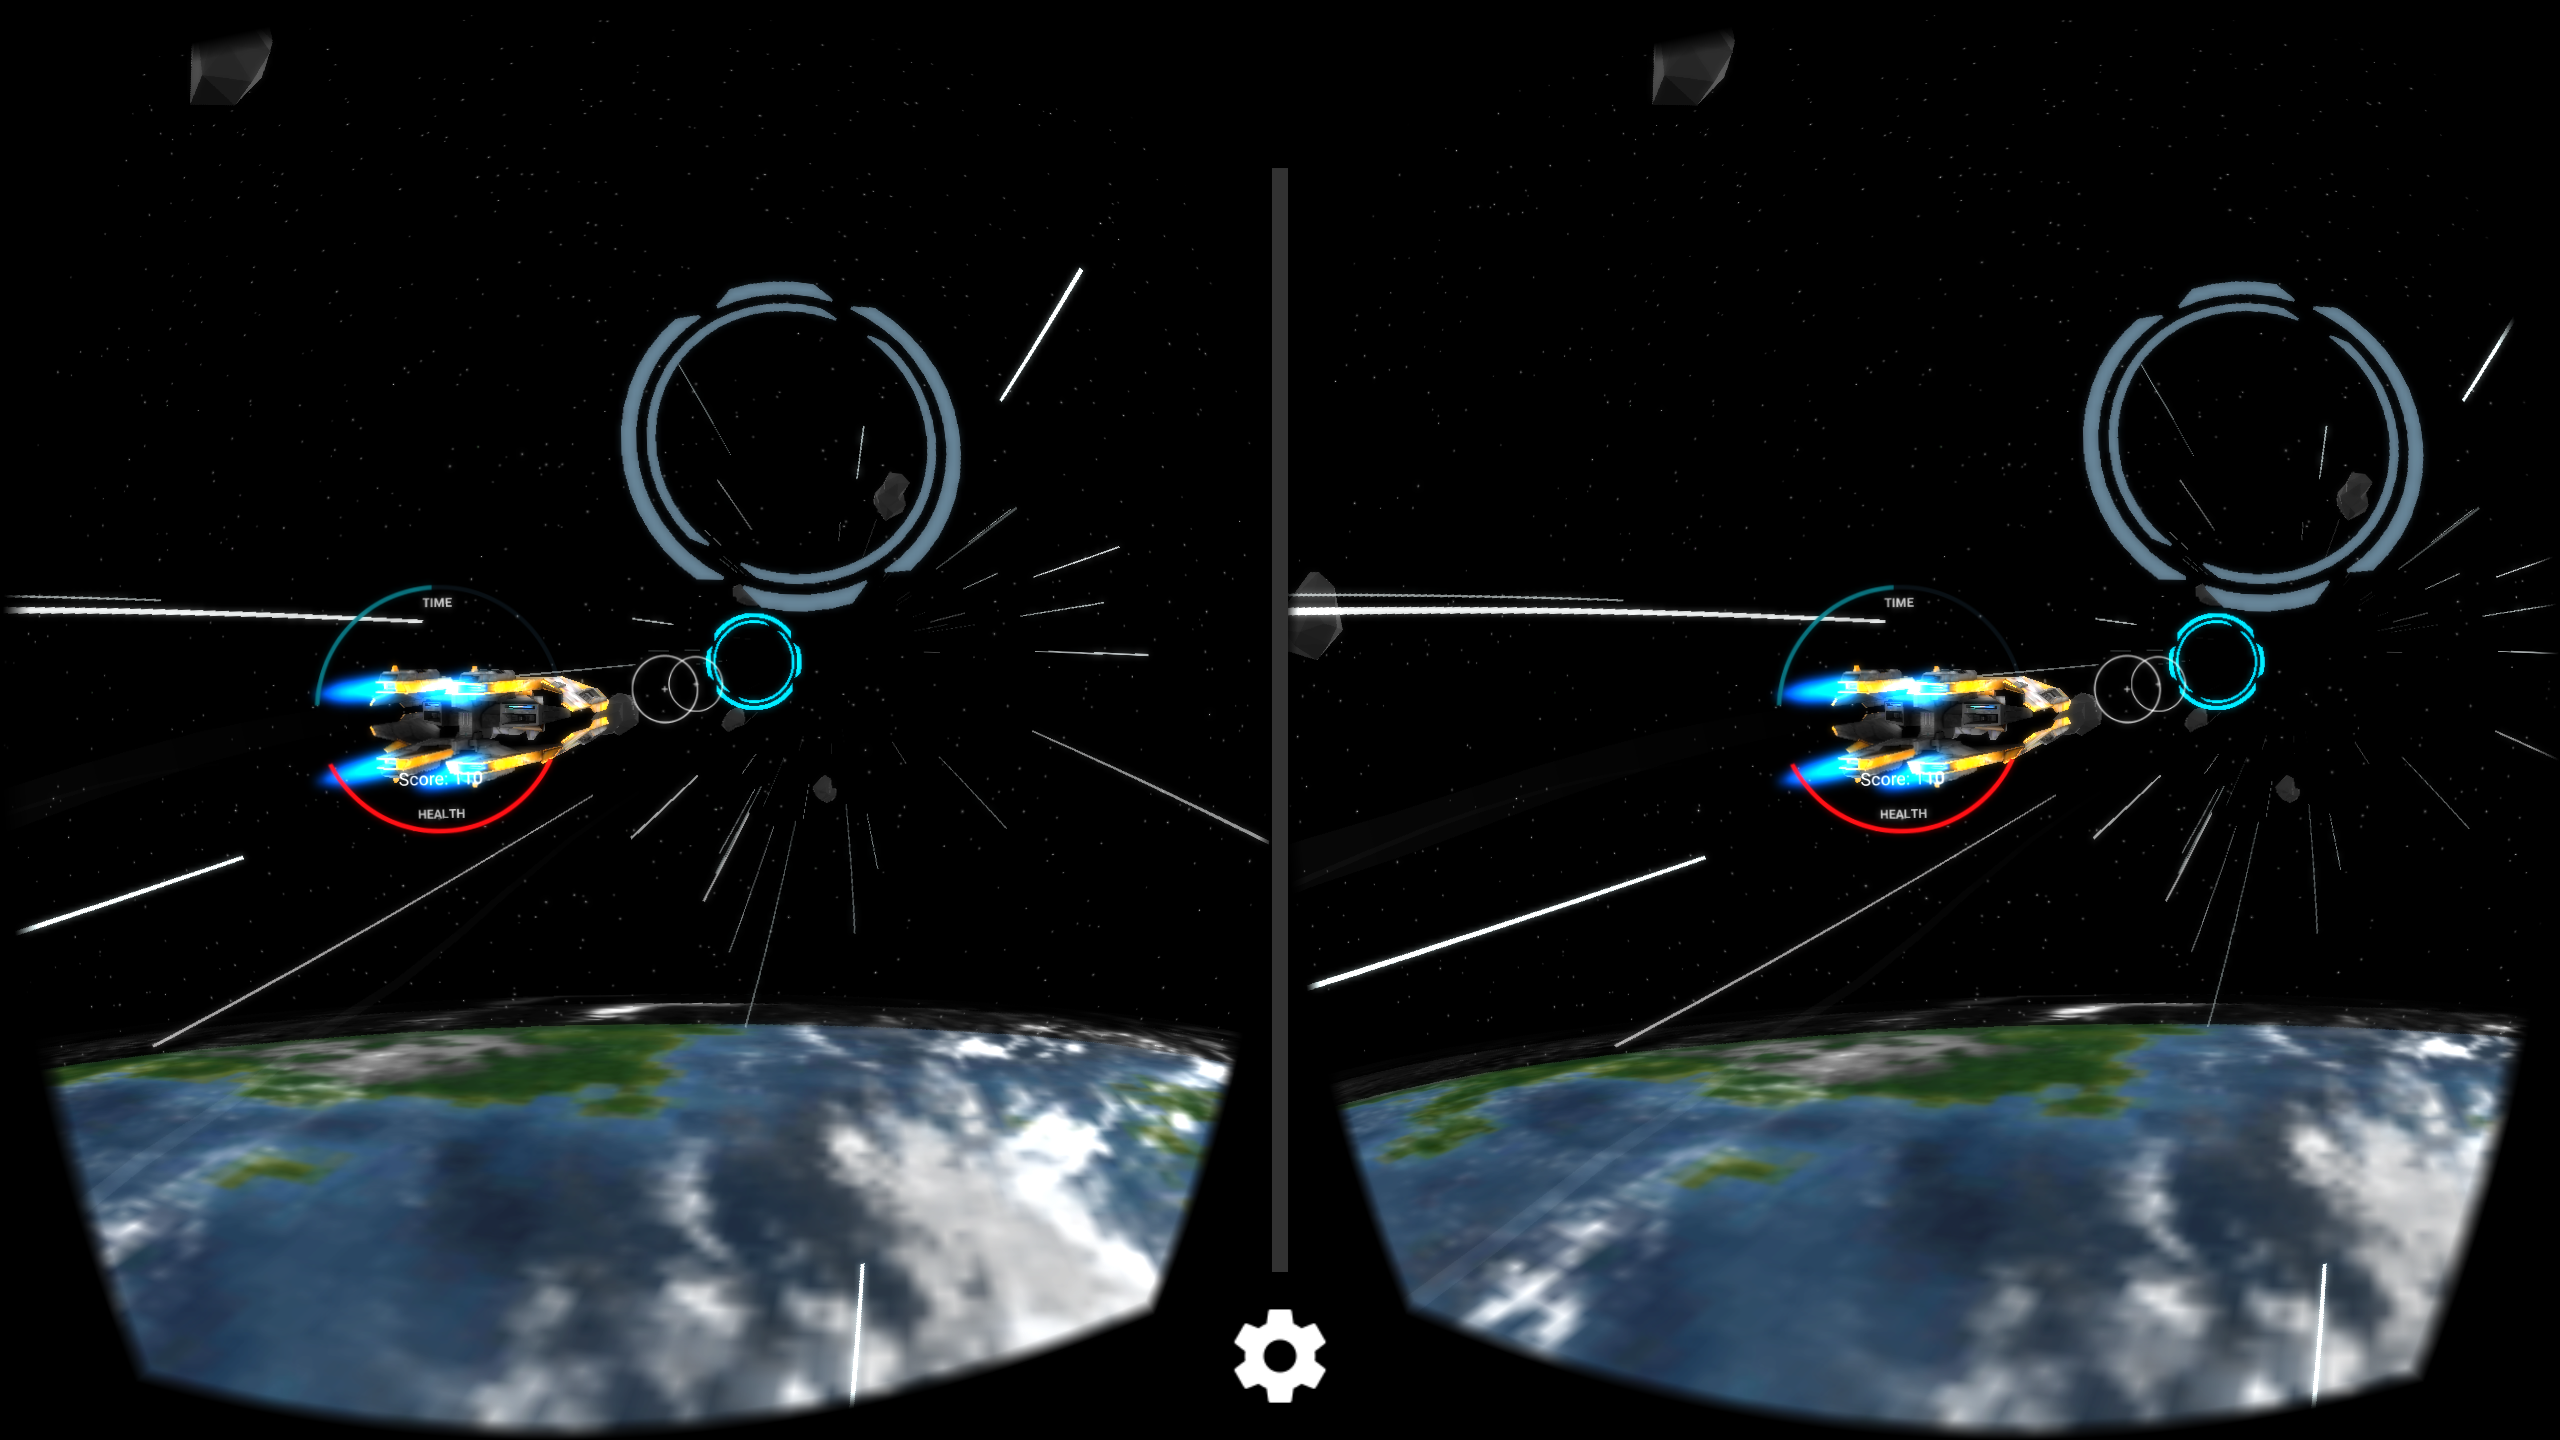 screenshot 2 Asteroids content image